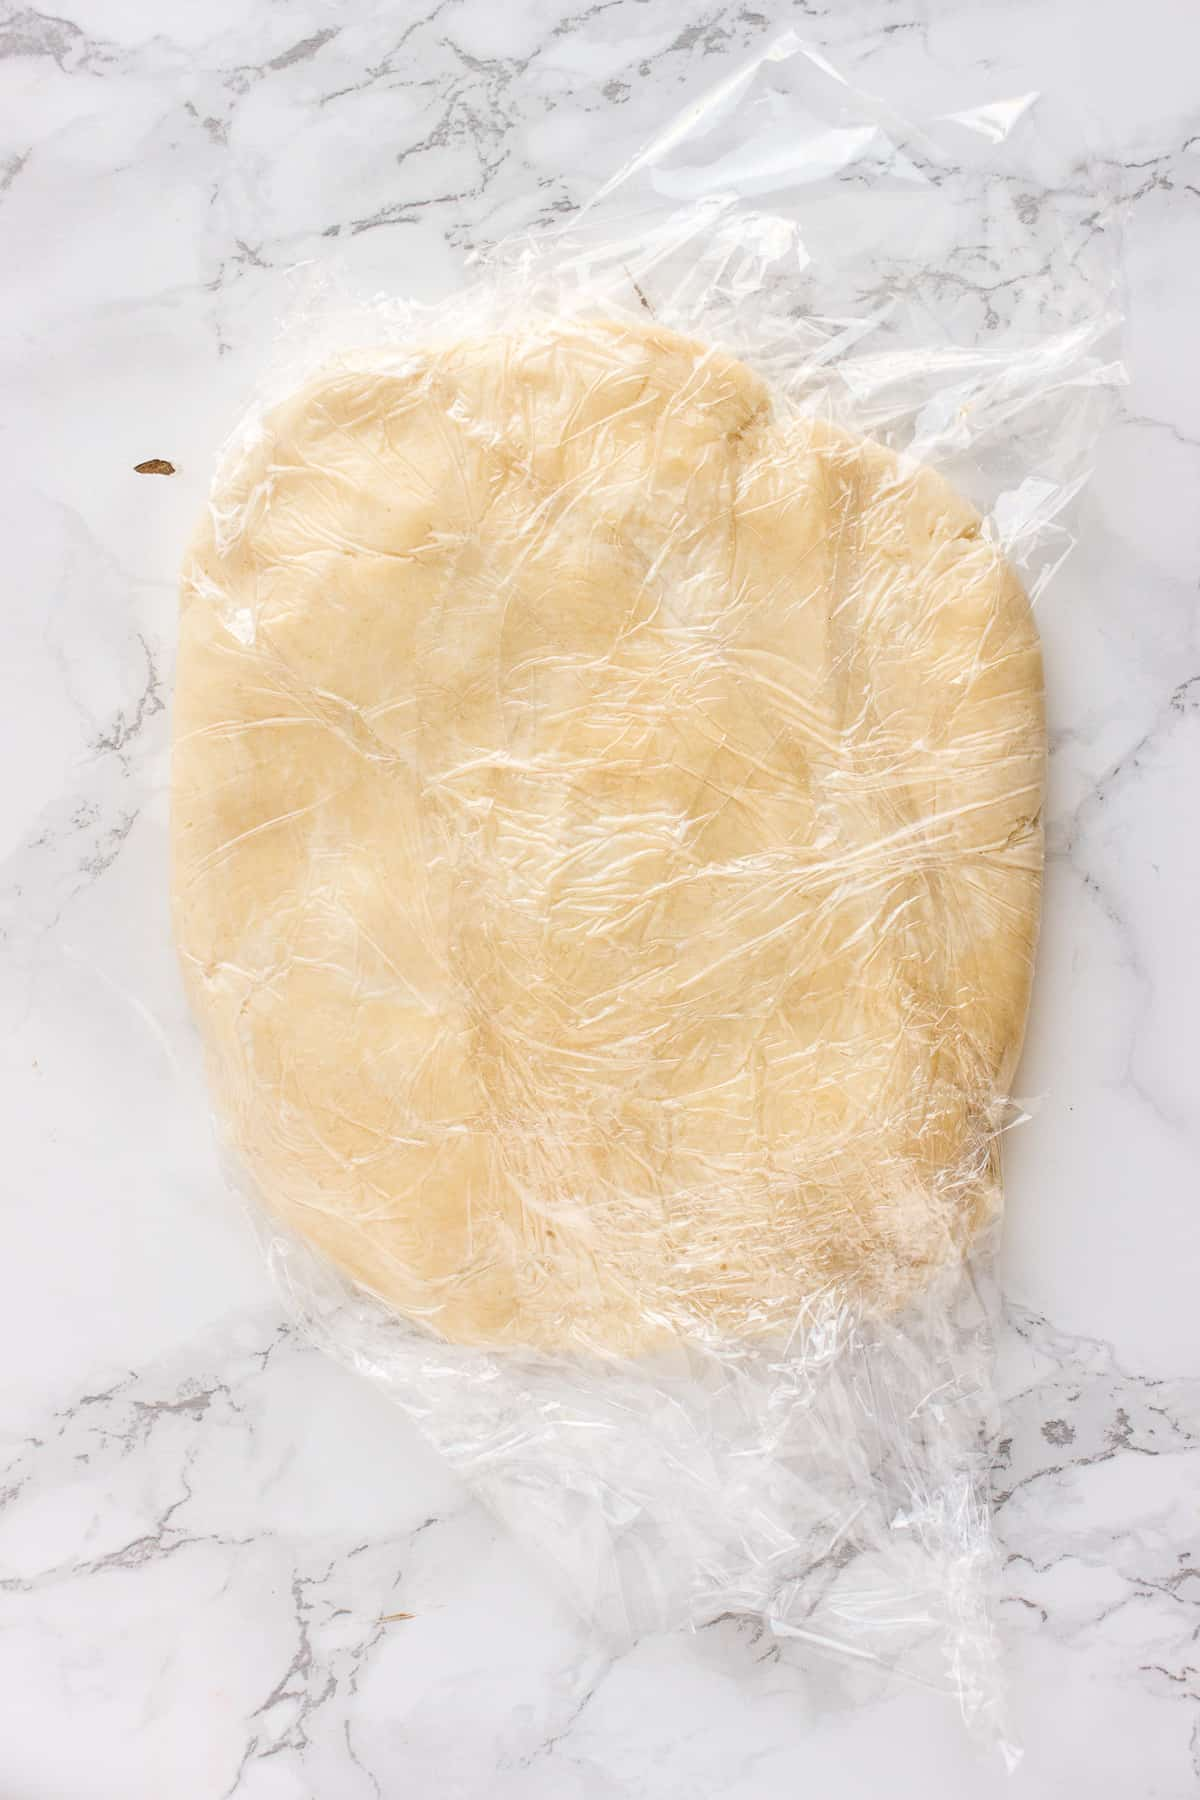 Shortcrust pastry wrapped in plastic wrap